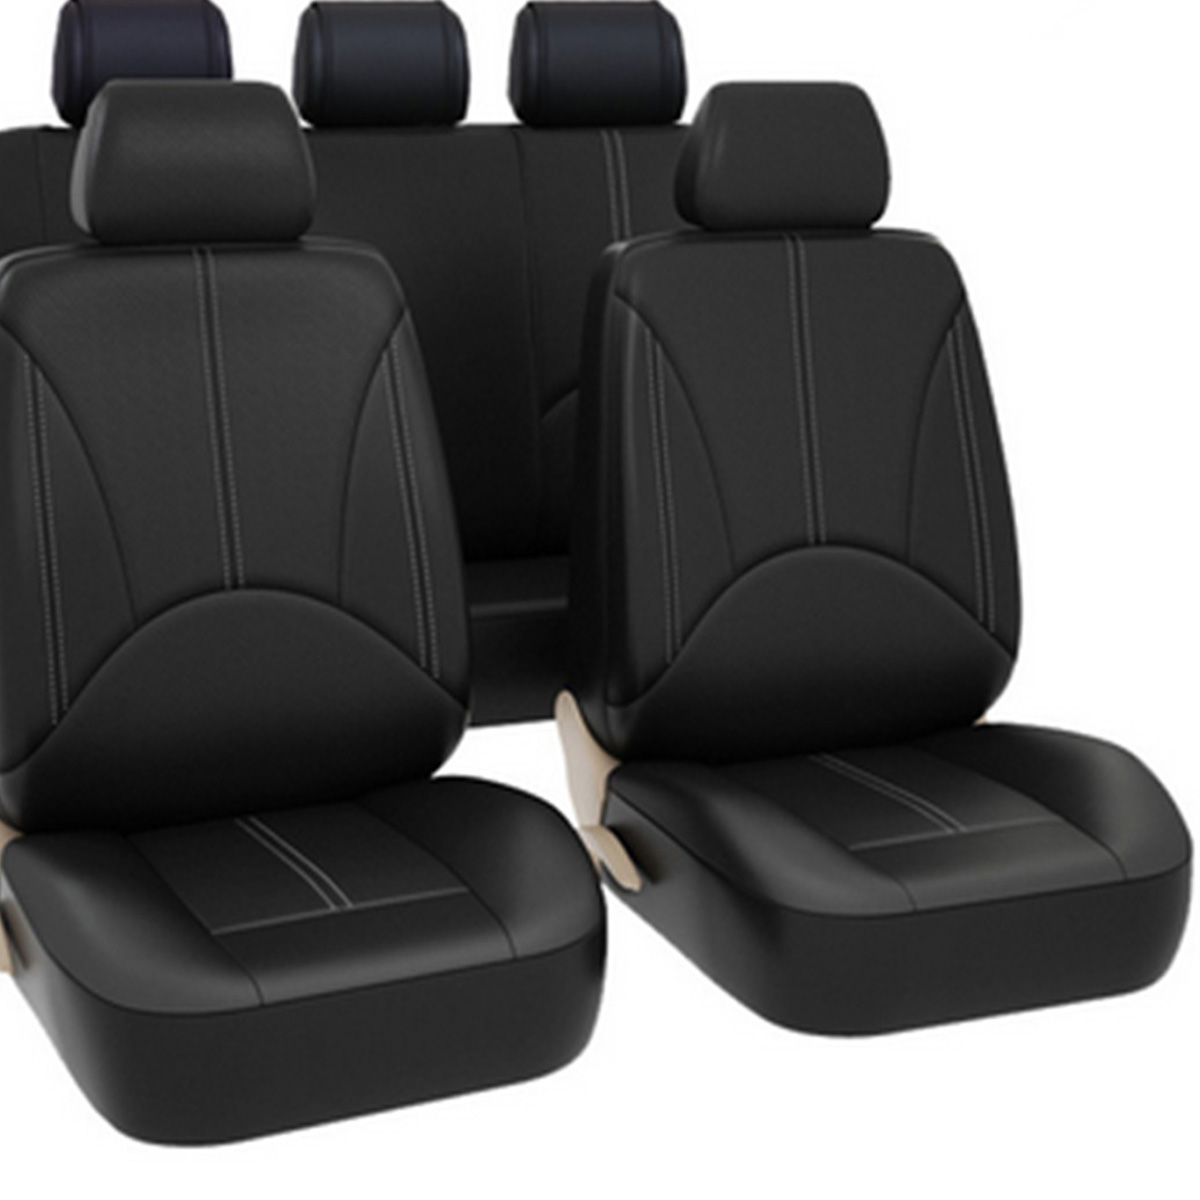 Back Seat Cover Head Rest Car Universal Wear resistant Dirt resistant Black